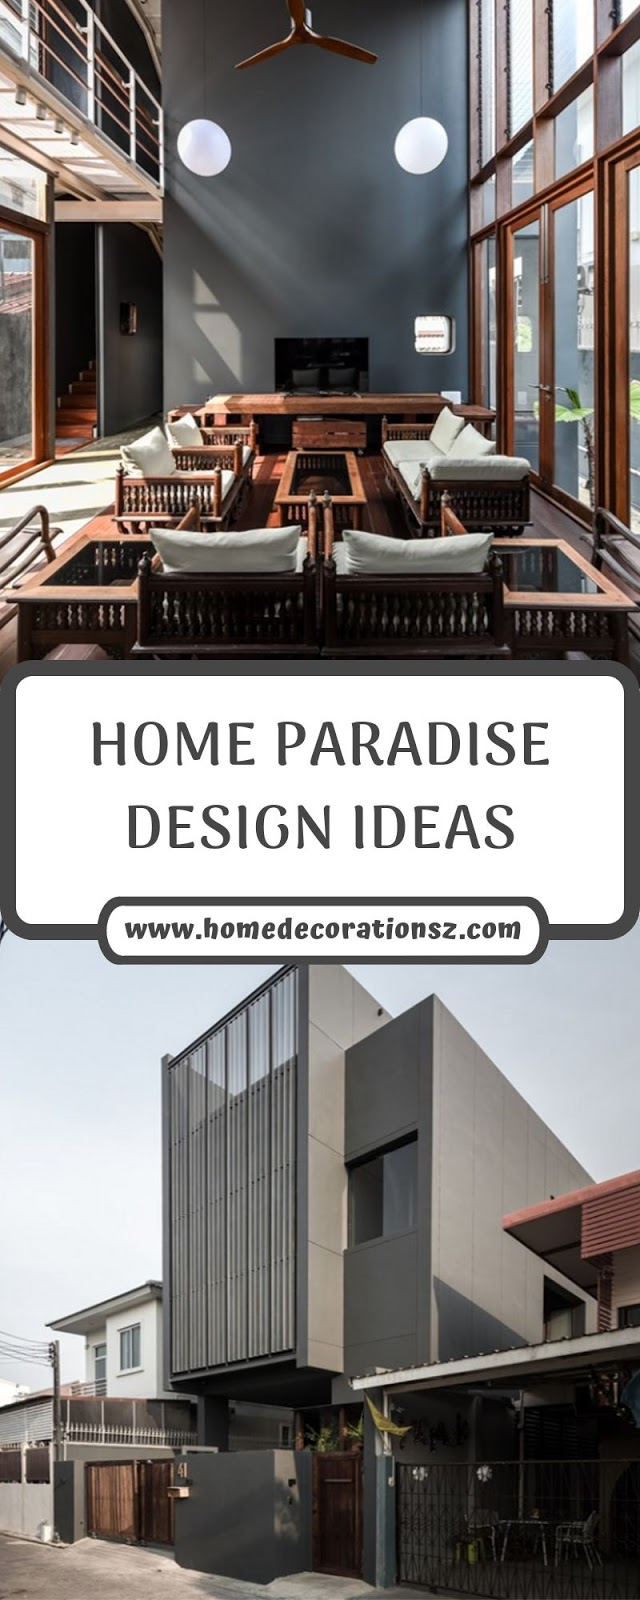 HOME PARADISE DESIGN IDEAS